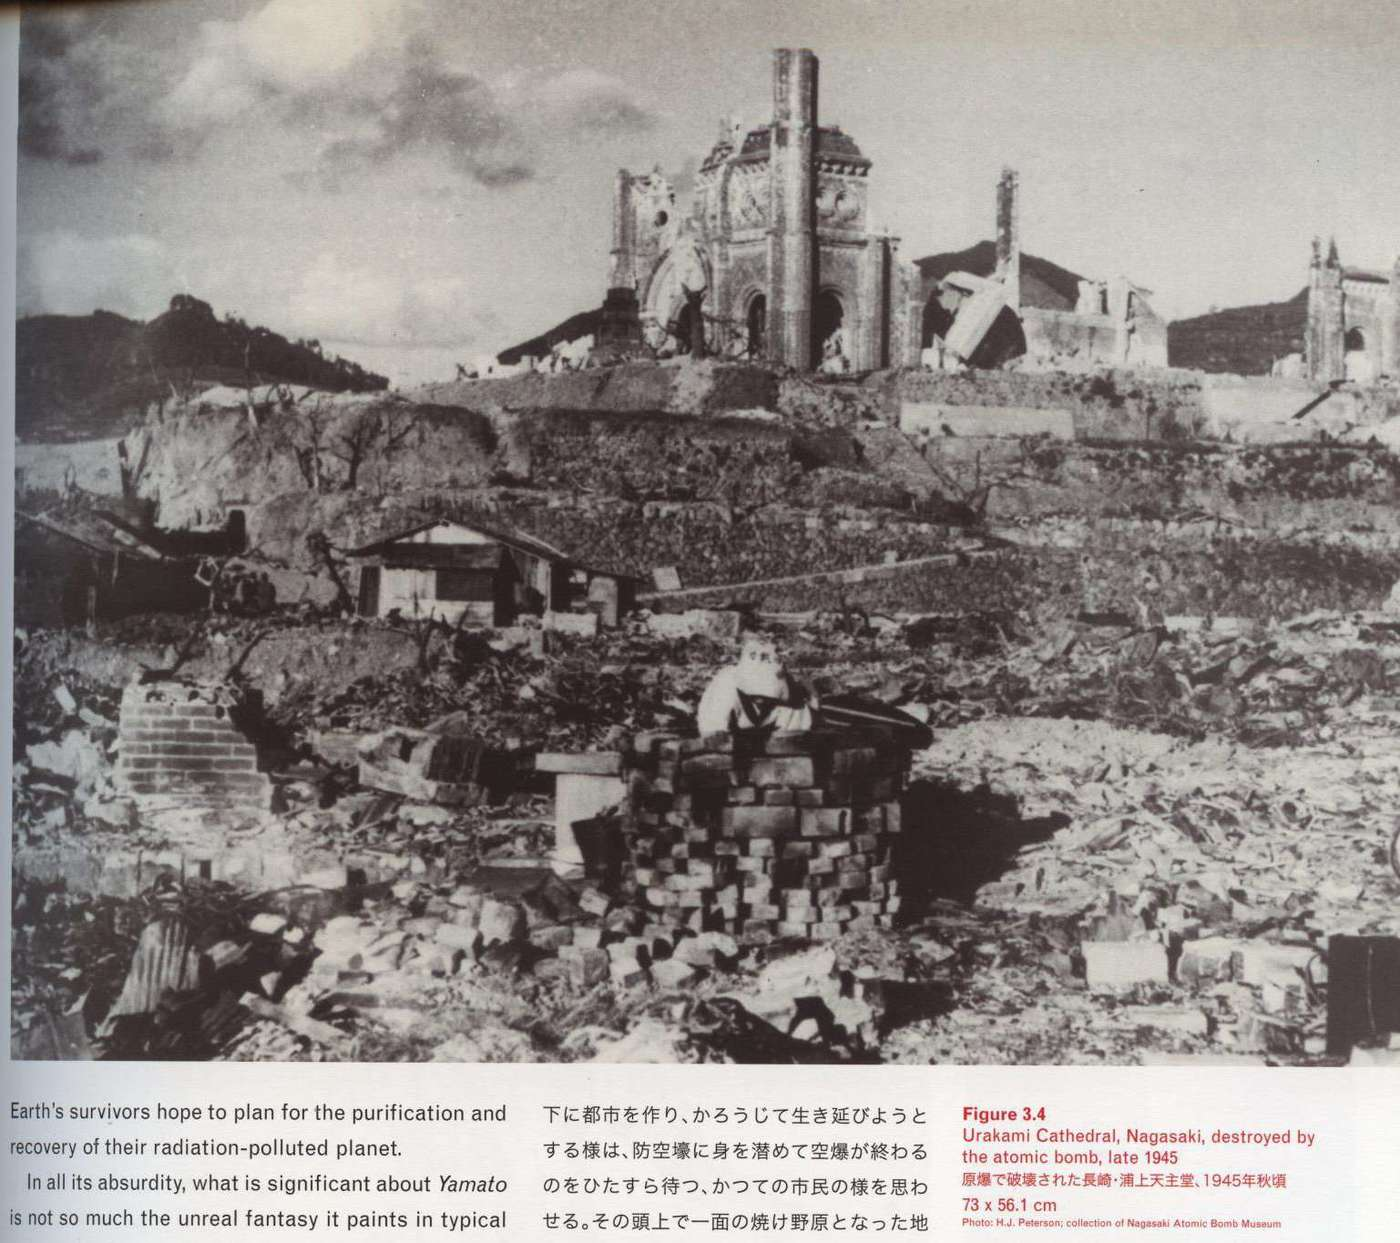 Caption right top: Urakami Cathedral, Nagasaki, destroyed by the atomic bomb, late 1945